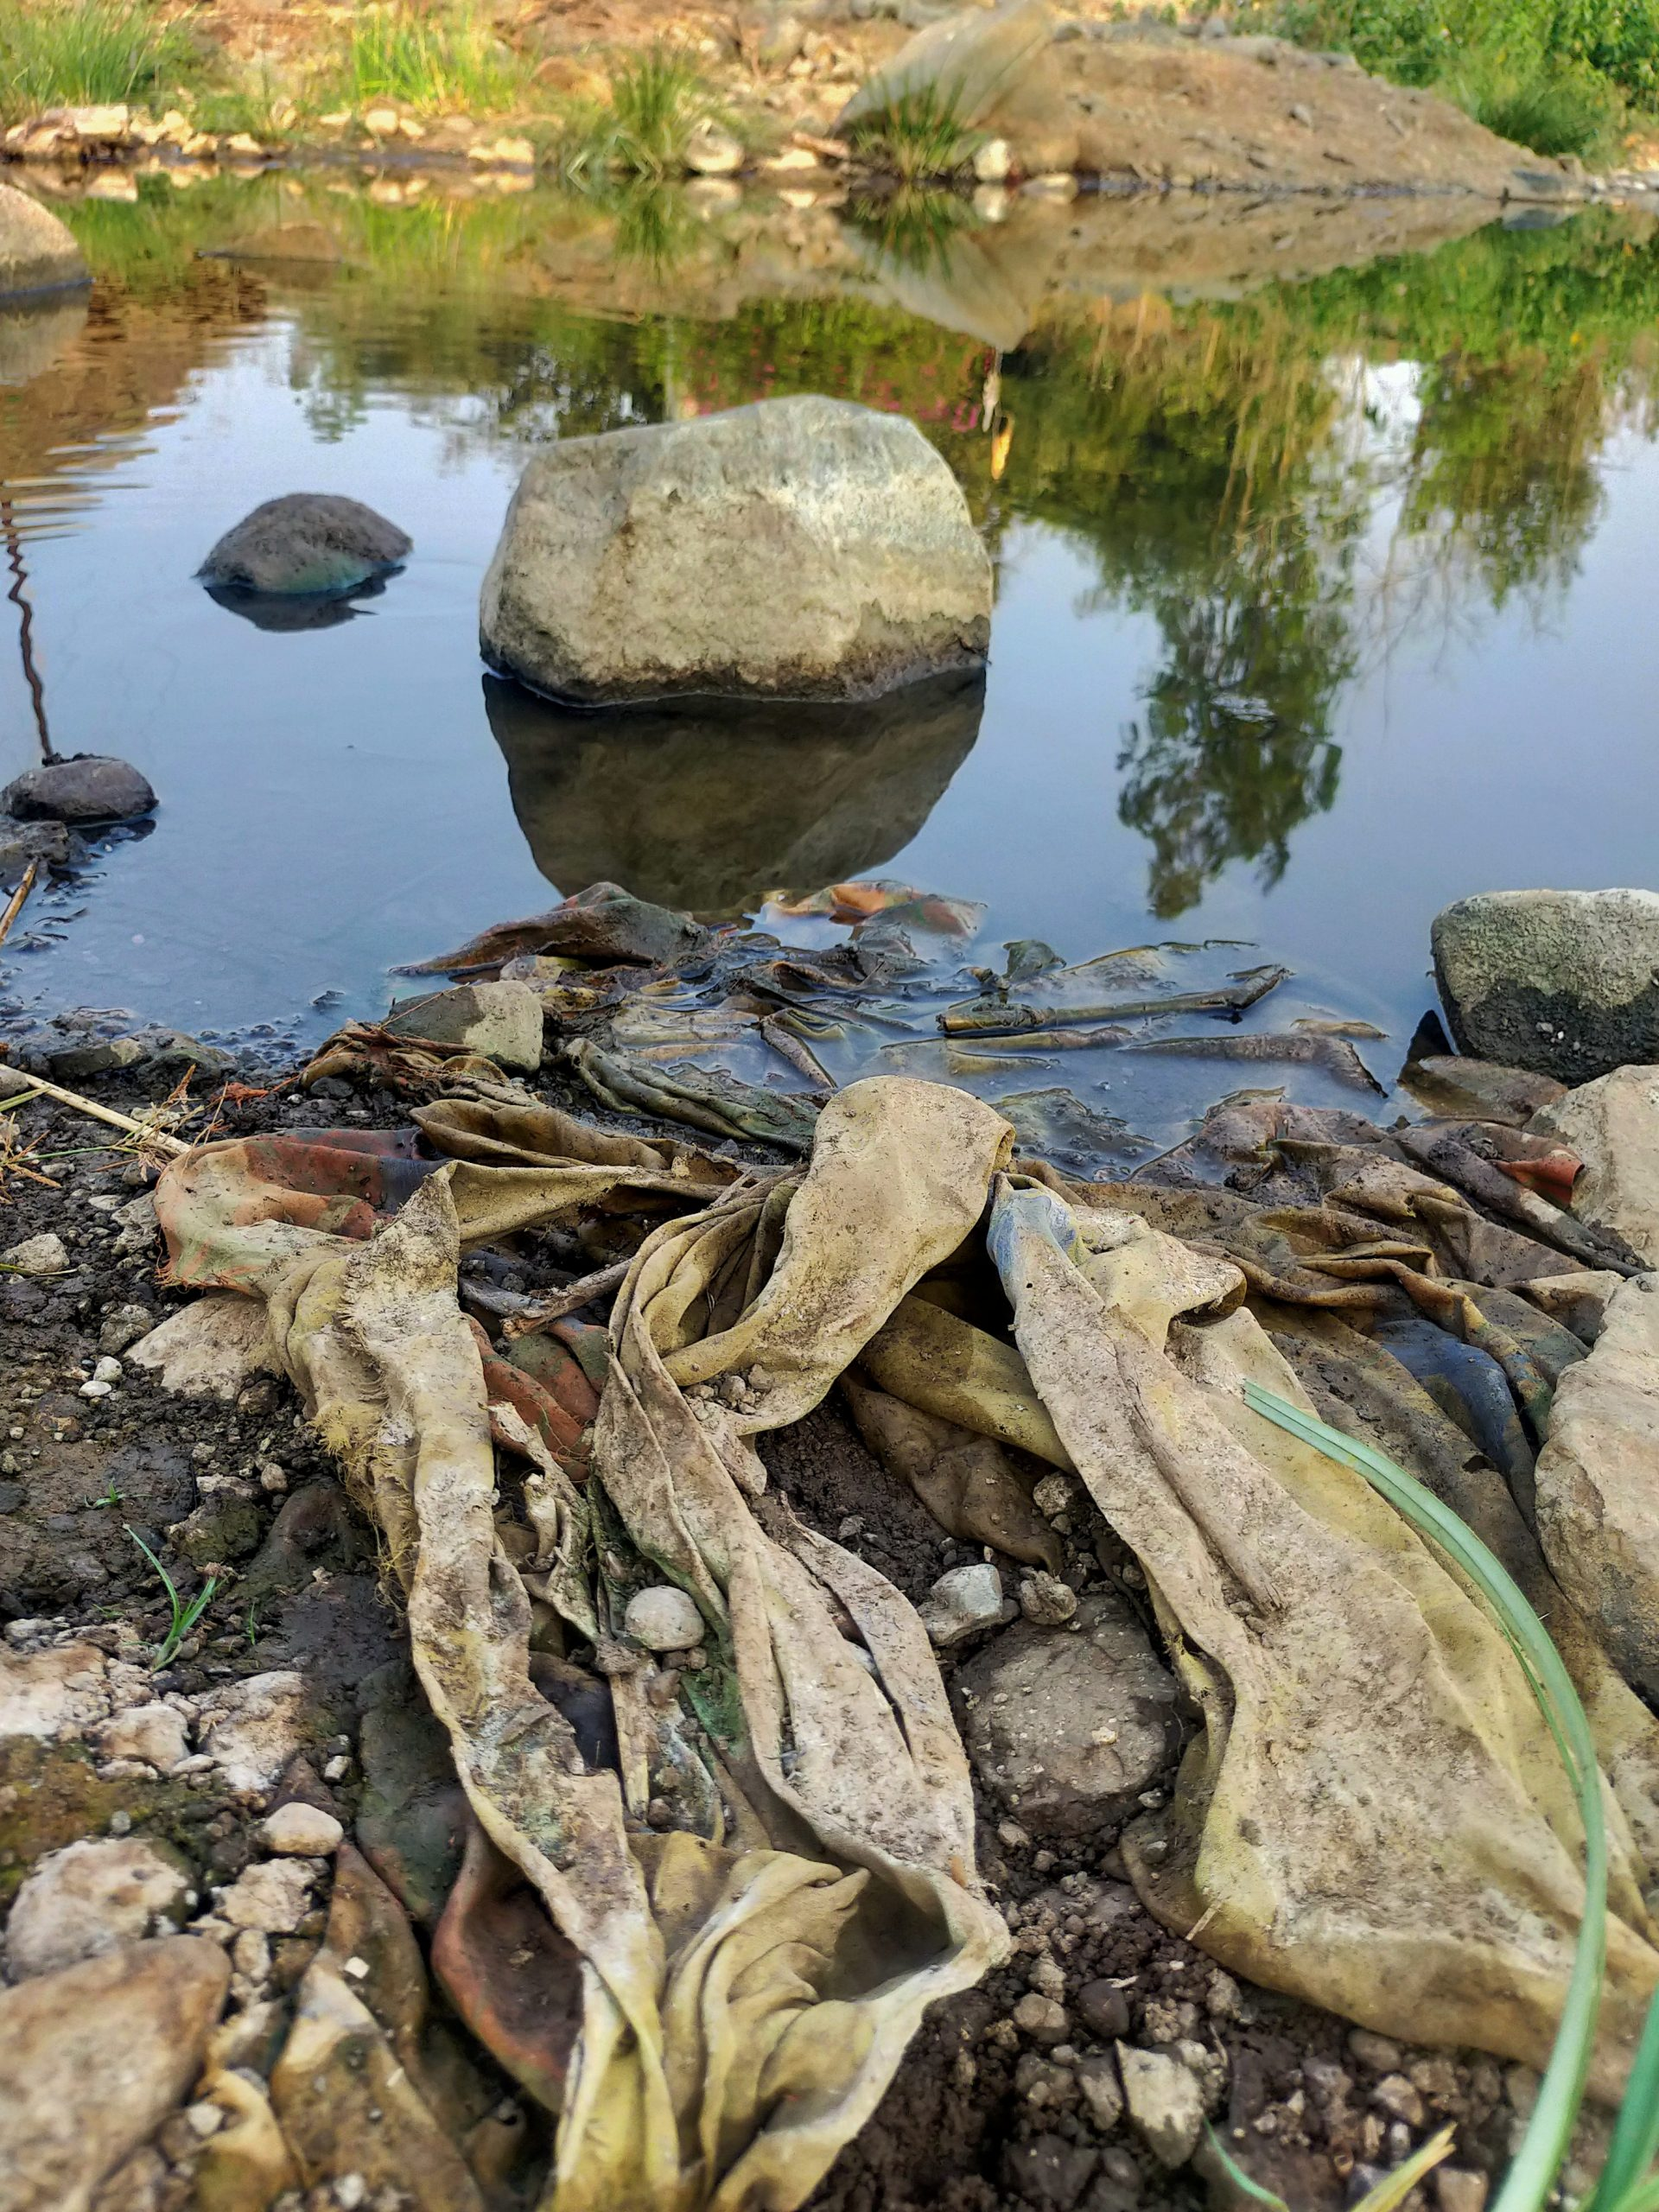 Waste materials in water